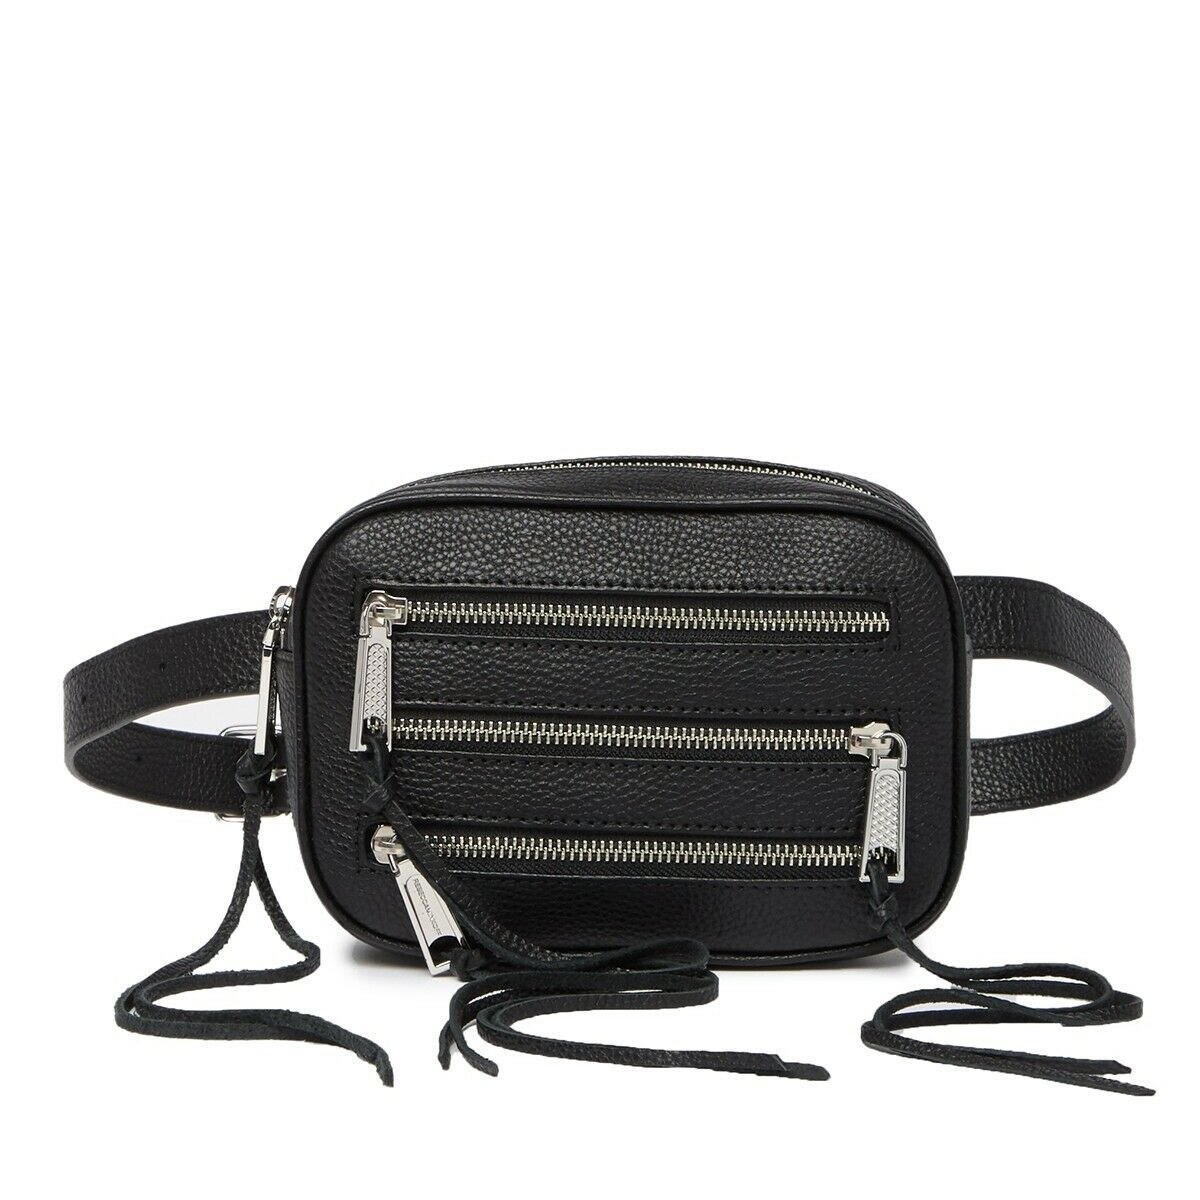 Primary image for NWT REBECCA MINKOFF 3 ZIP PEBBLED LEATHER BELT BAG FANNY PACK BLACK